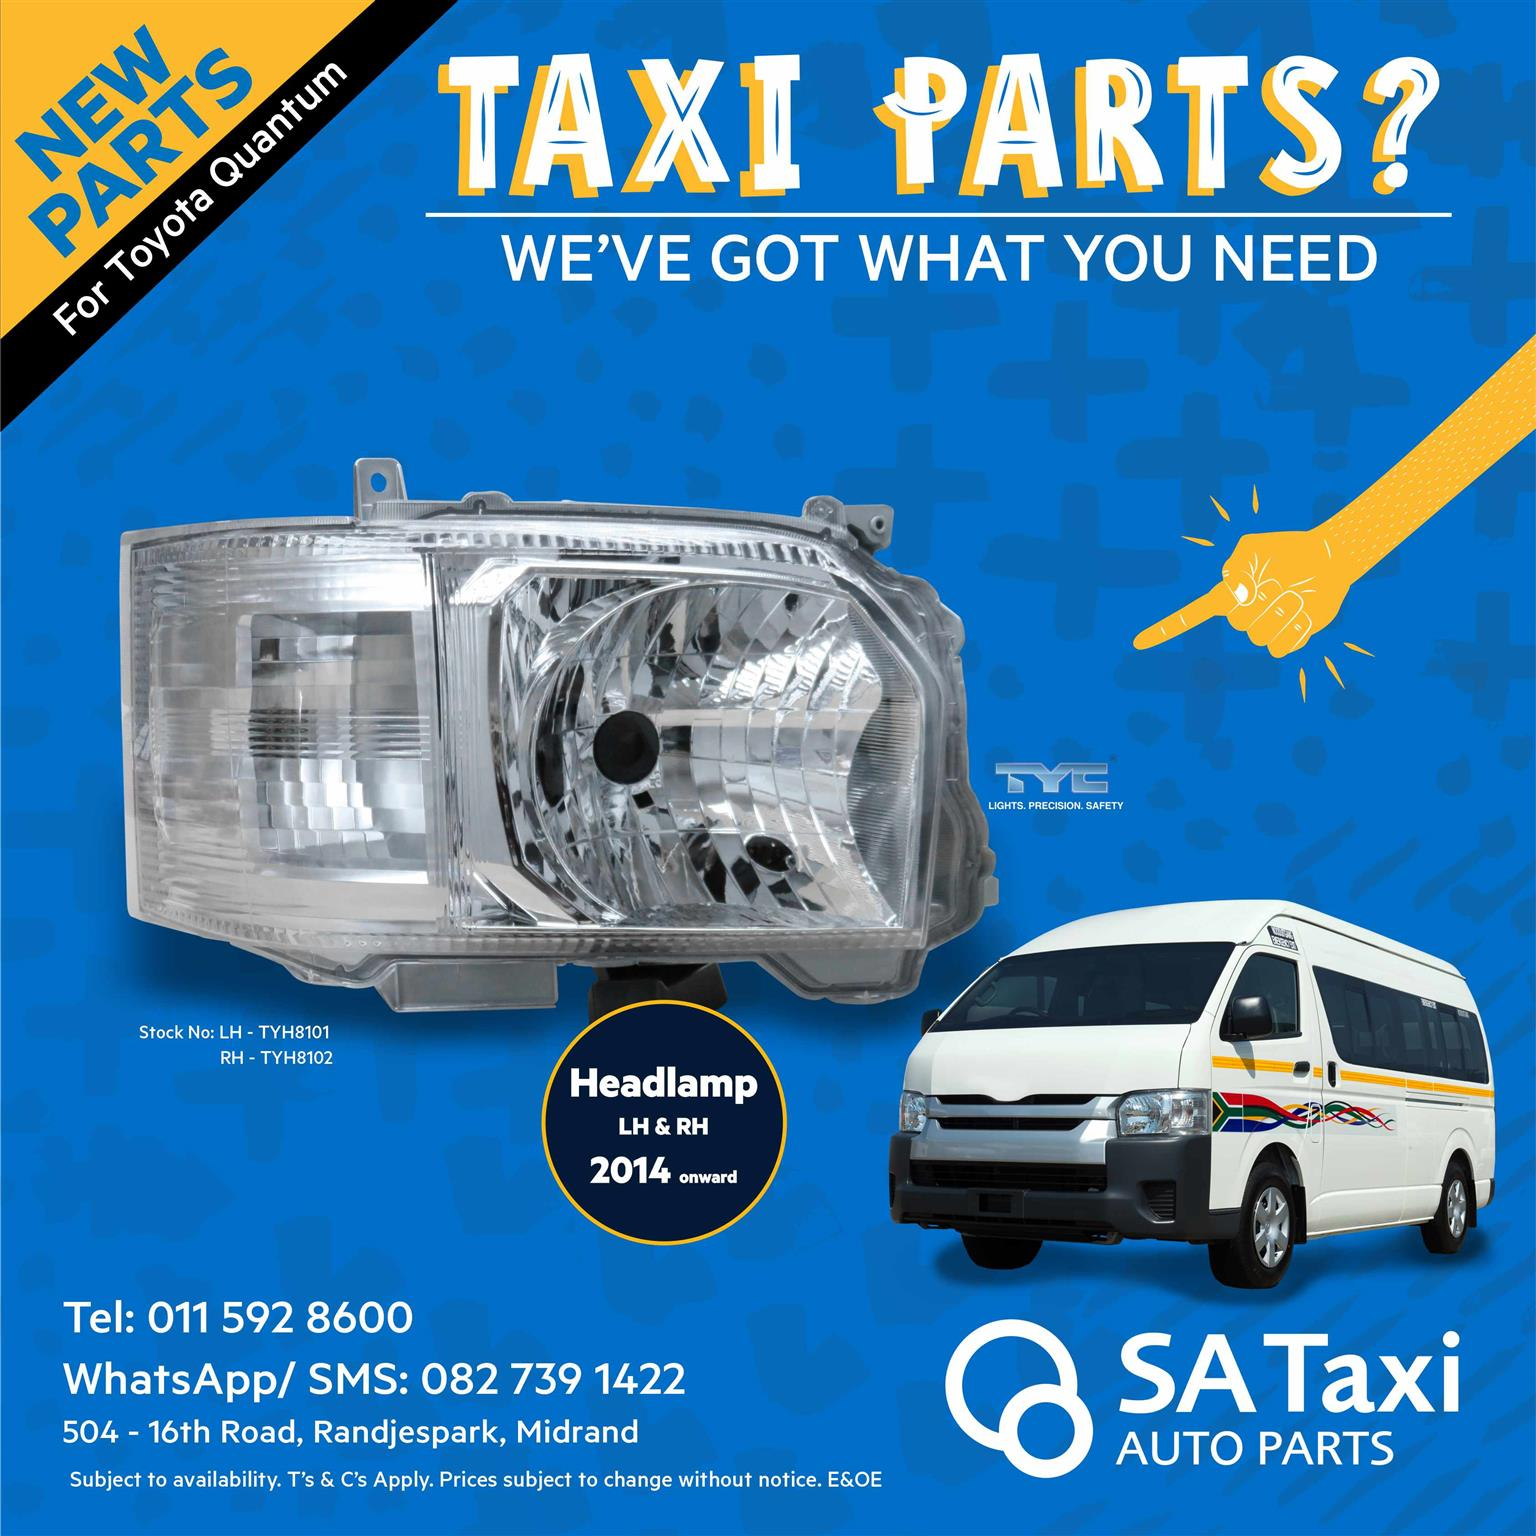 New Headlamp 2014 onwards suitable for Toyota Quantum - SA Taxi Auto Parts